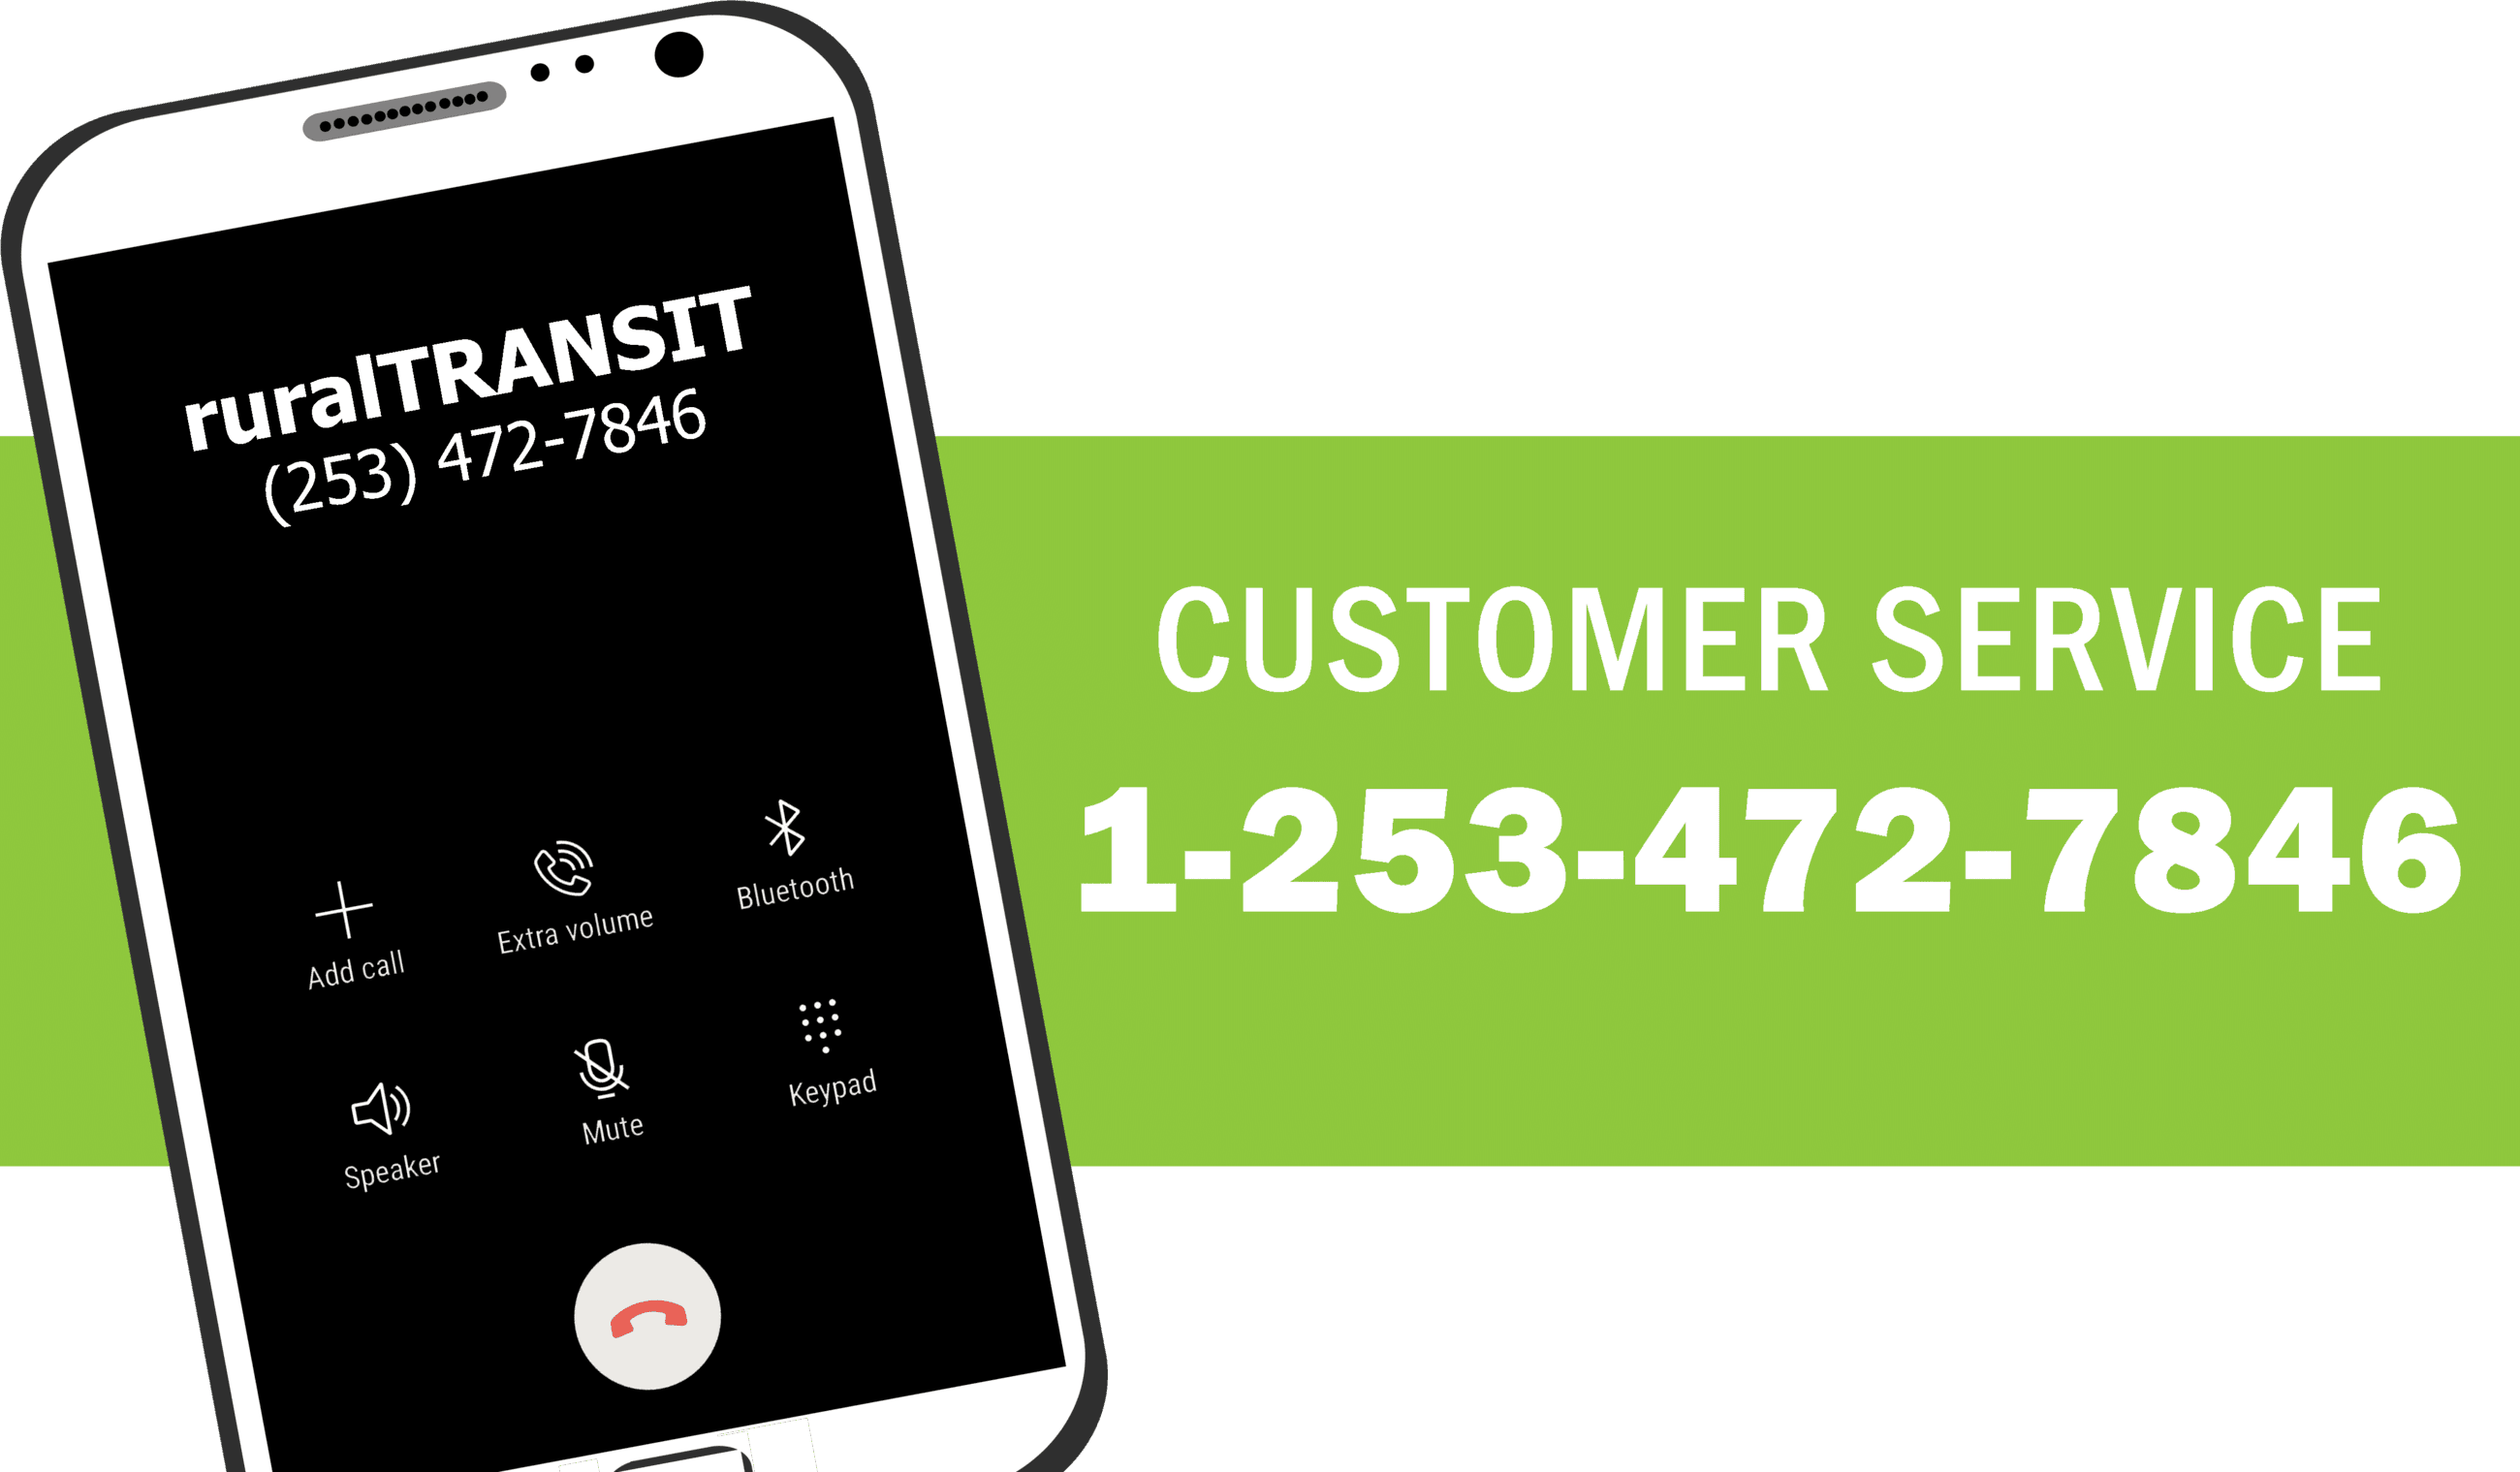 thumbnail image showing cell phone and customer service number 1-253-472-7846